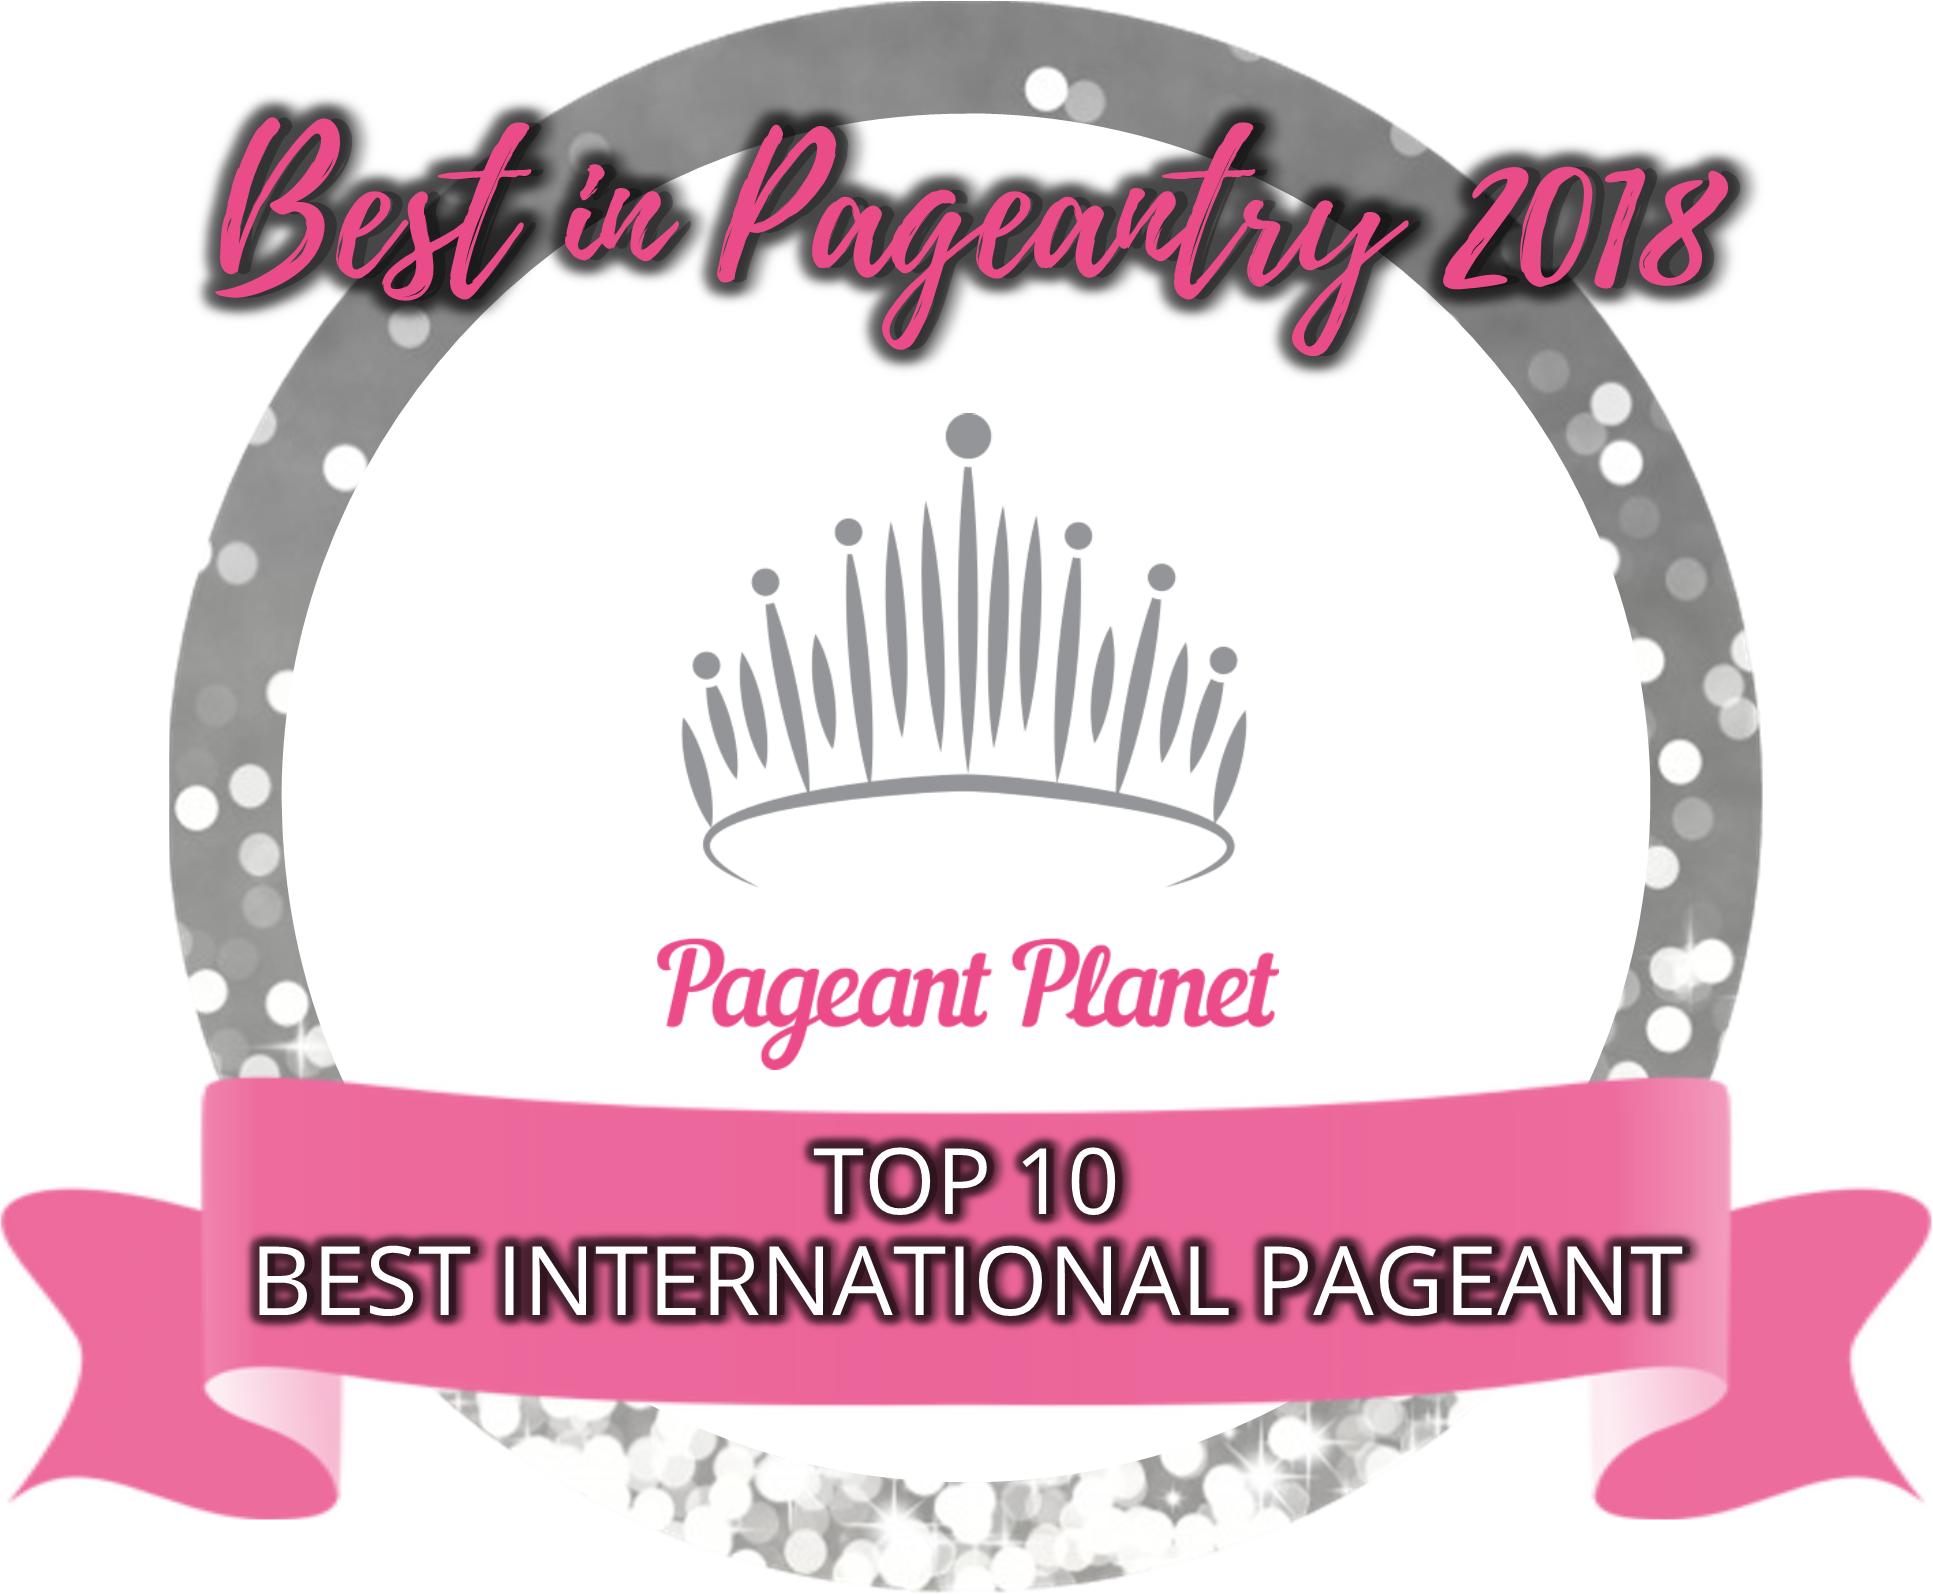 Top 10 Best International Pageant of 2018